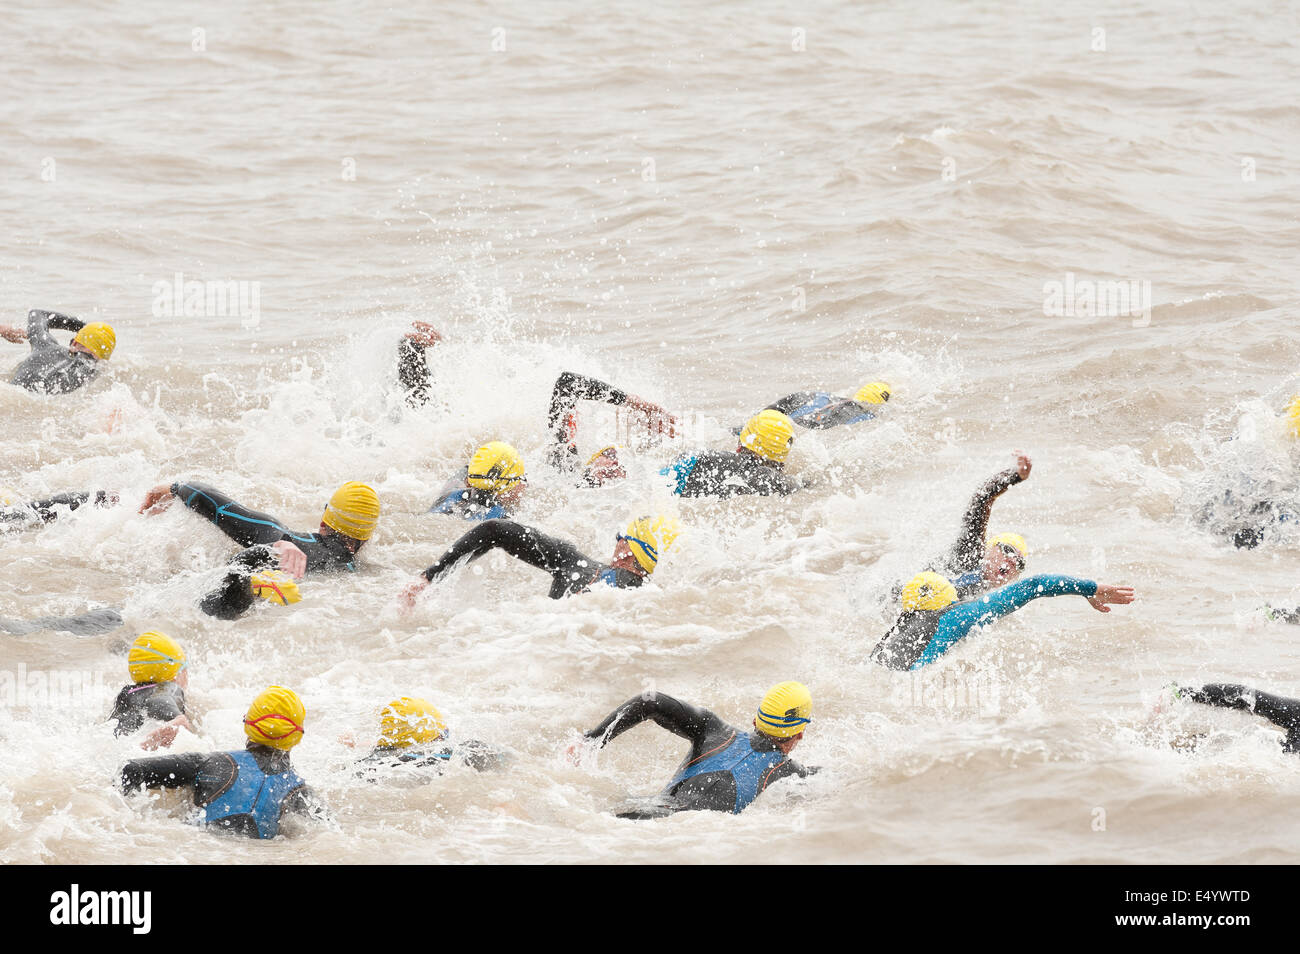 Open water swimming competitors sprinting at start of a triathlon in sea wearing wetsuits crawl deep start freestyle - Stock Image